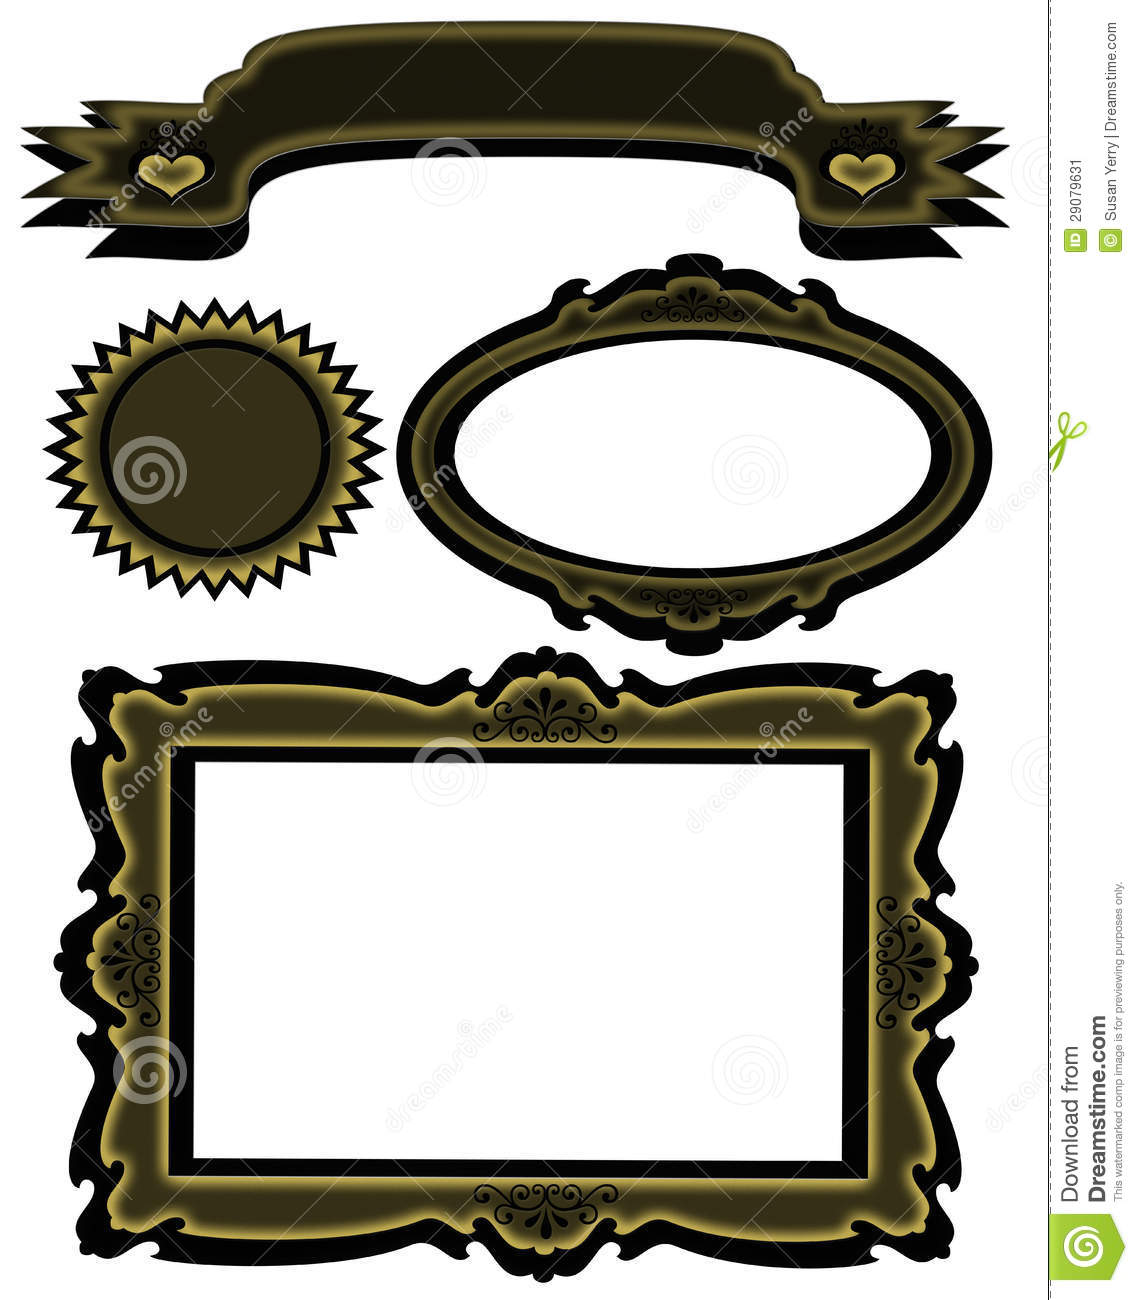 black and gold frame png. Exellent Png Matching Banner Frame Starburst Set To Black And Gold Png C